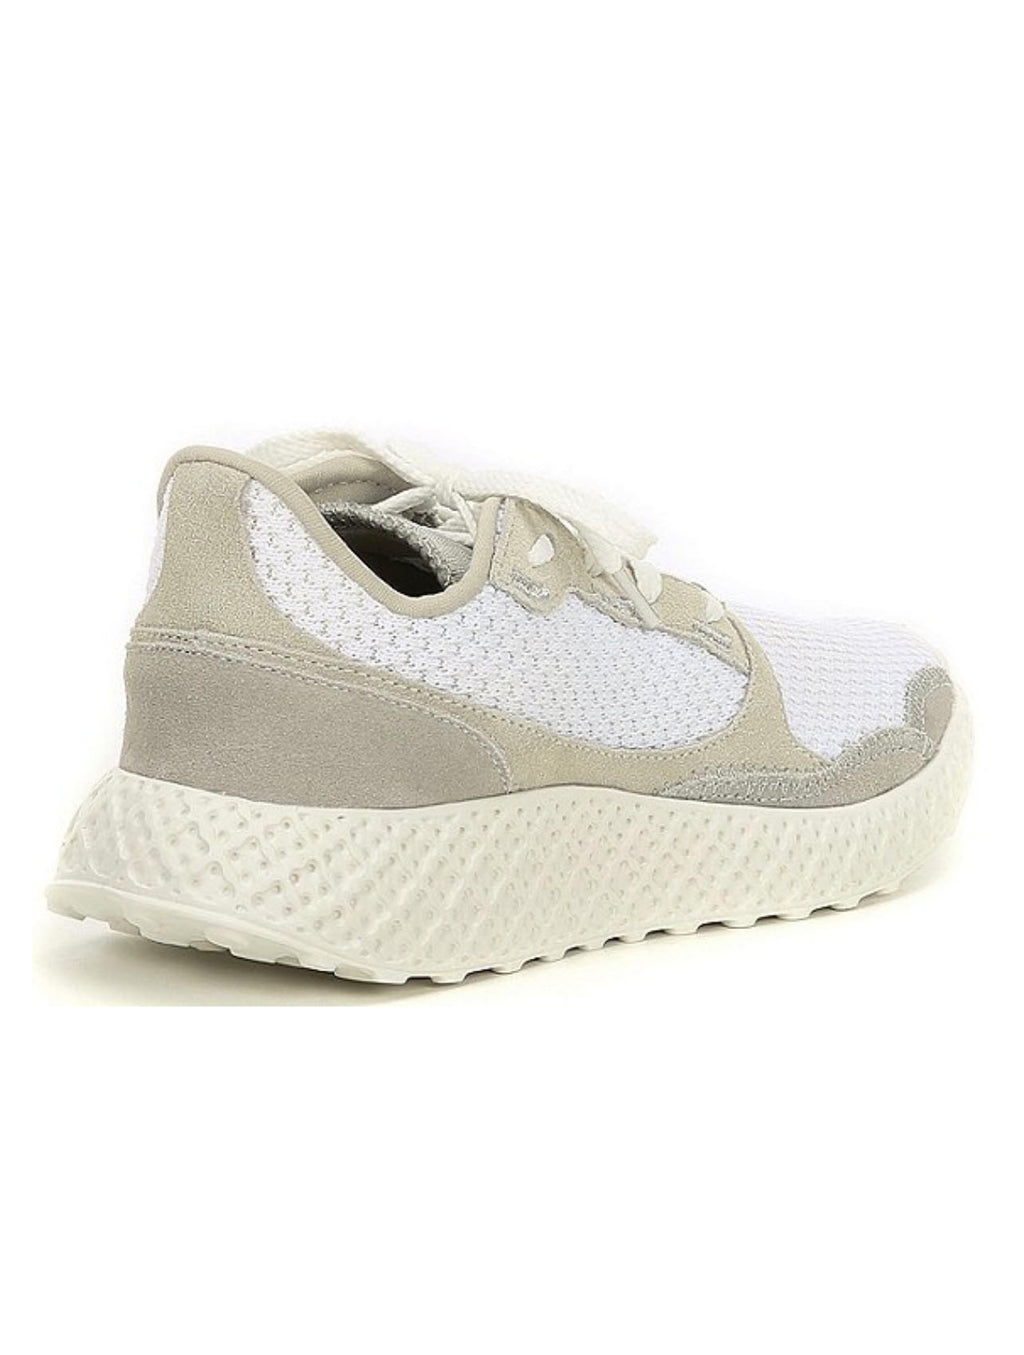 Steve Madden Run Sneaker in White Multi